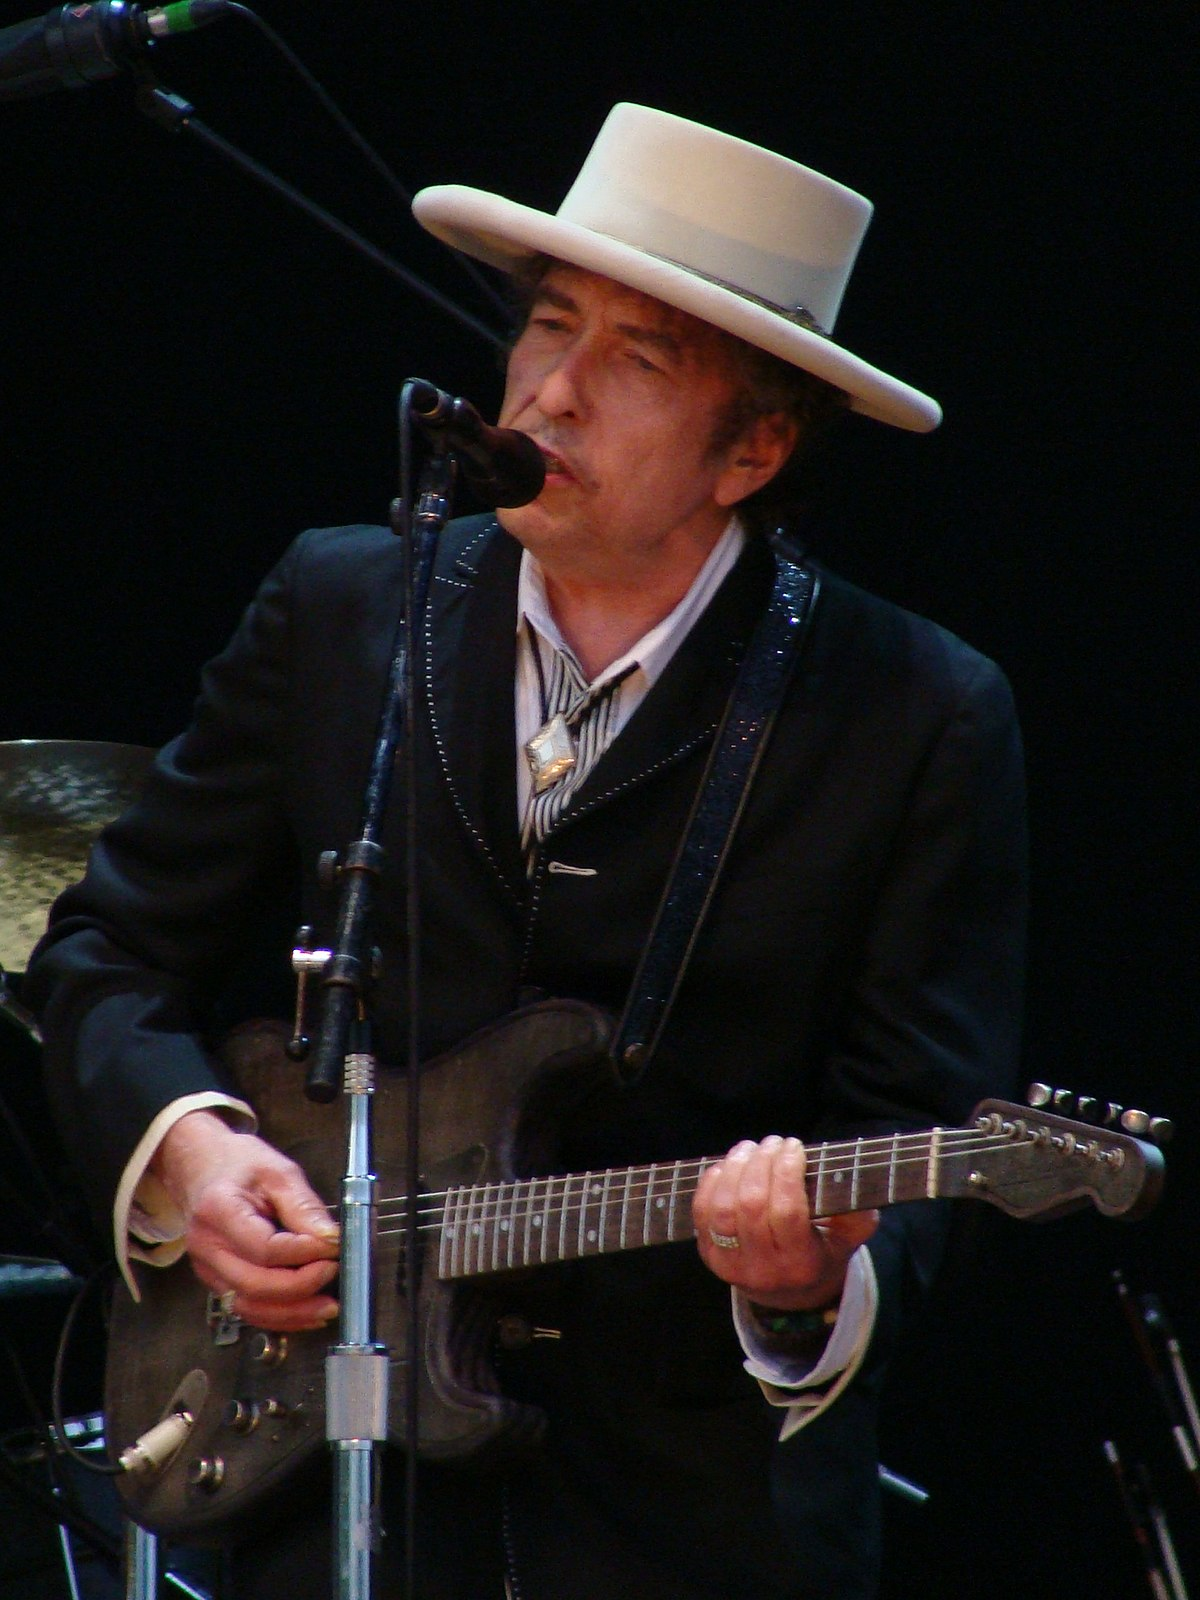 Bob Dylan (2010) Picture by: Alberto Cabello